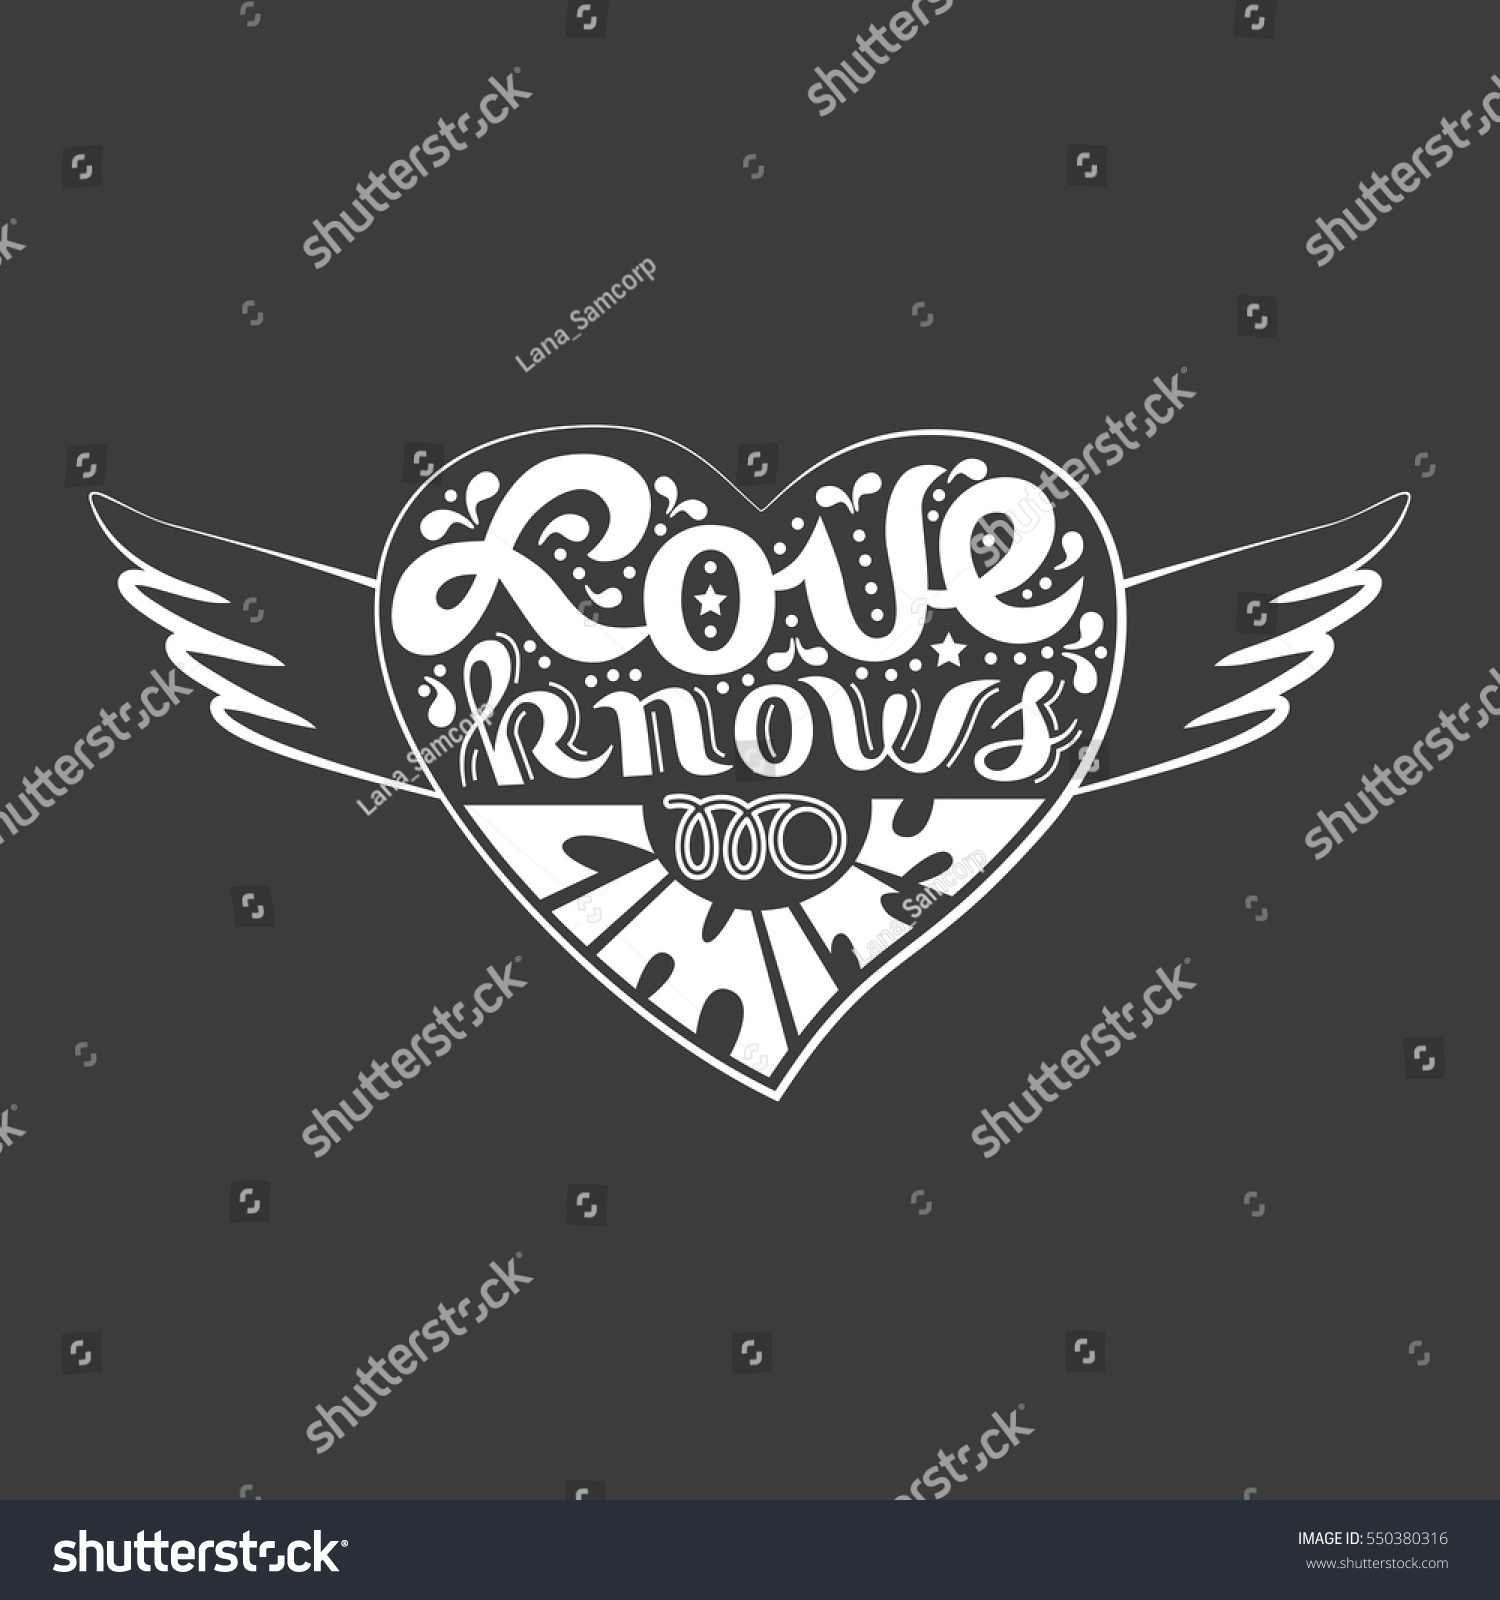 Romantic love icon inspirational quote heart stock vector inspirational quote in heart with wings freehand fancy cartoon hand lettering buycottarizona